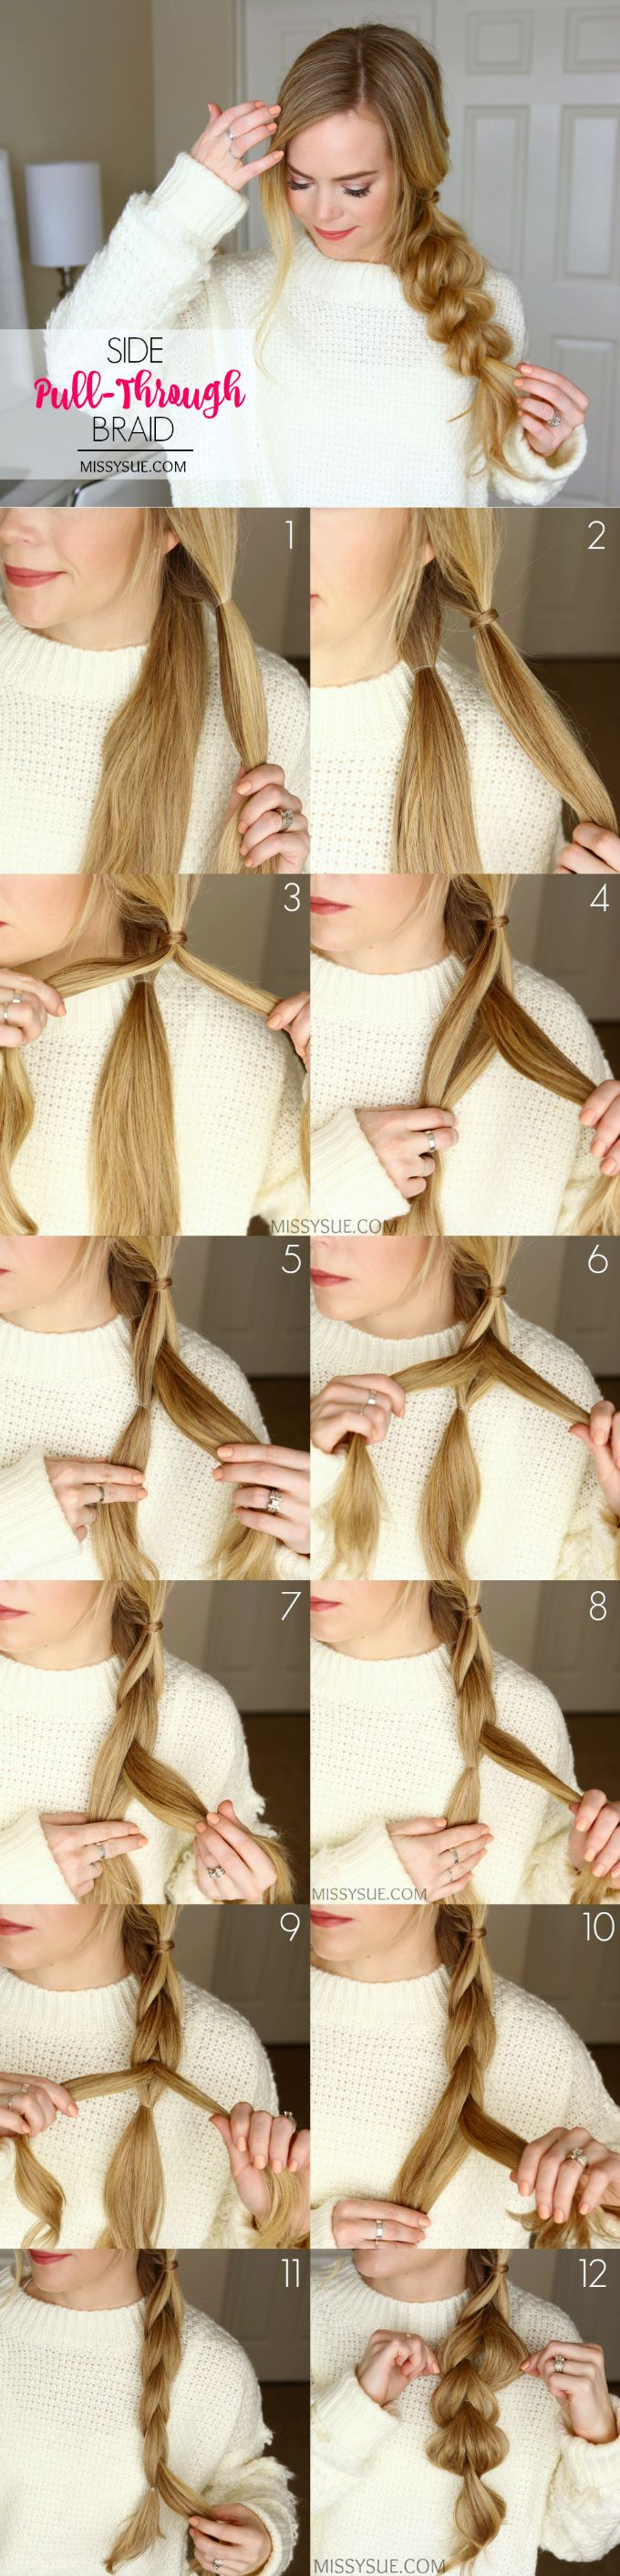 Super cute braid